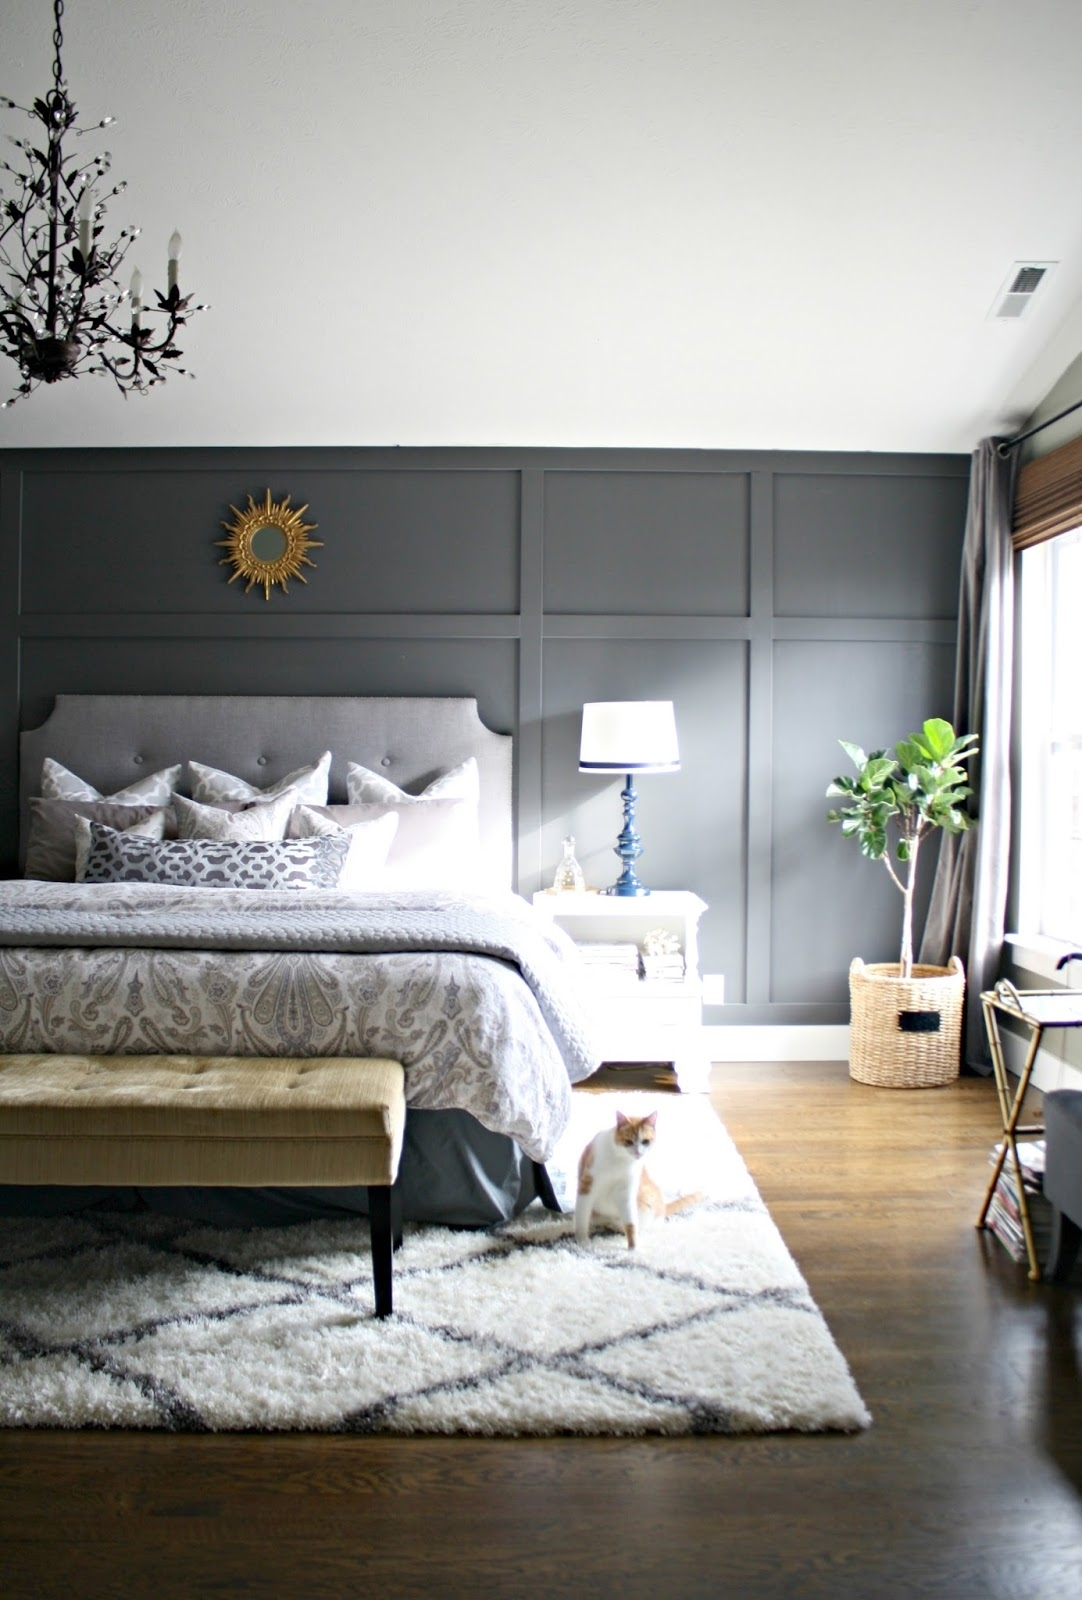 Bedroom Design: Cheap Wood Accent Wall Accent Wall Color Inside Most Up To Date Gray Wall Accents (View 13 of 15)